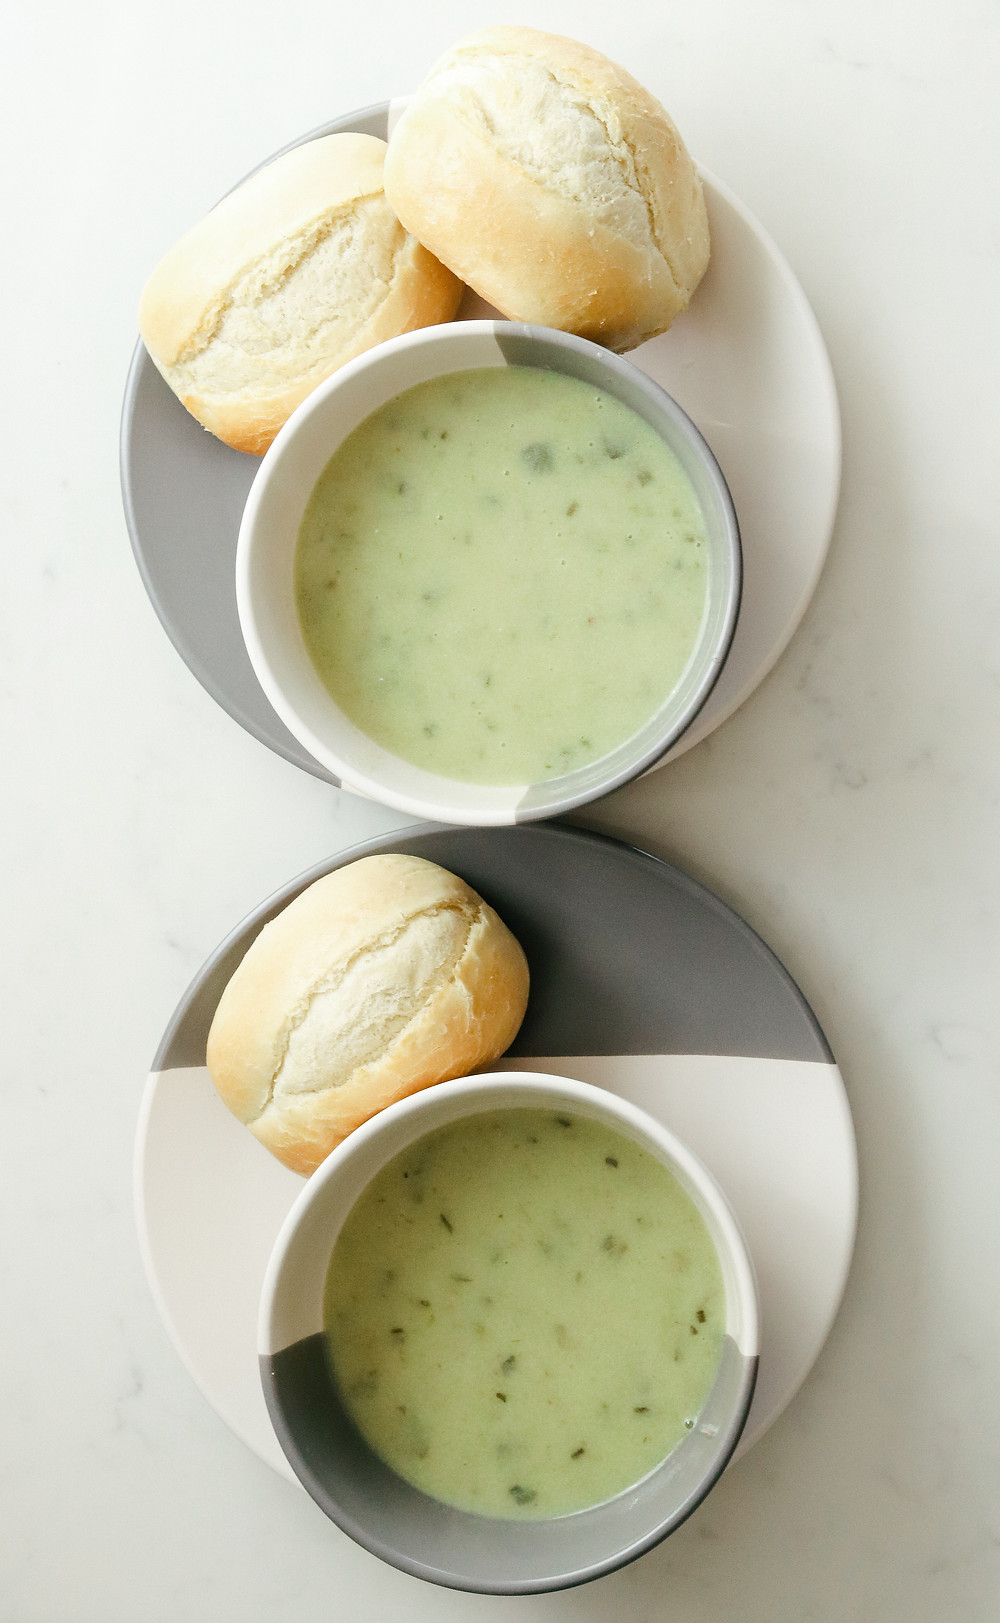 two bowls of green creamy soup and bread rolls on the plates